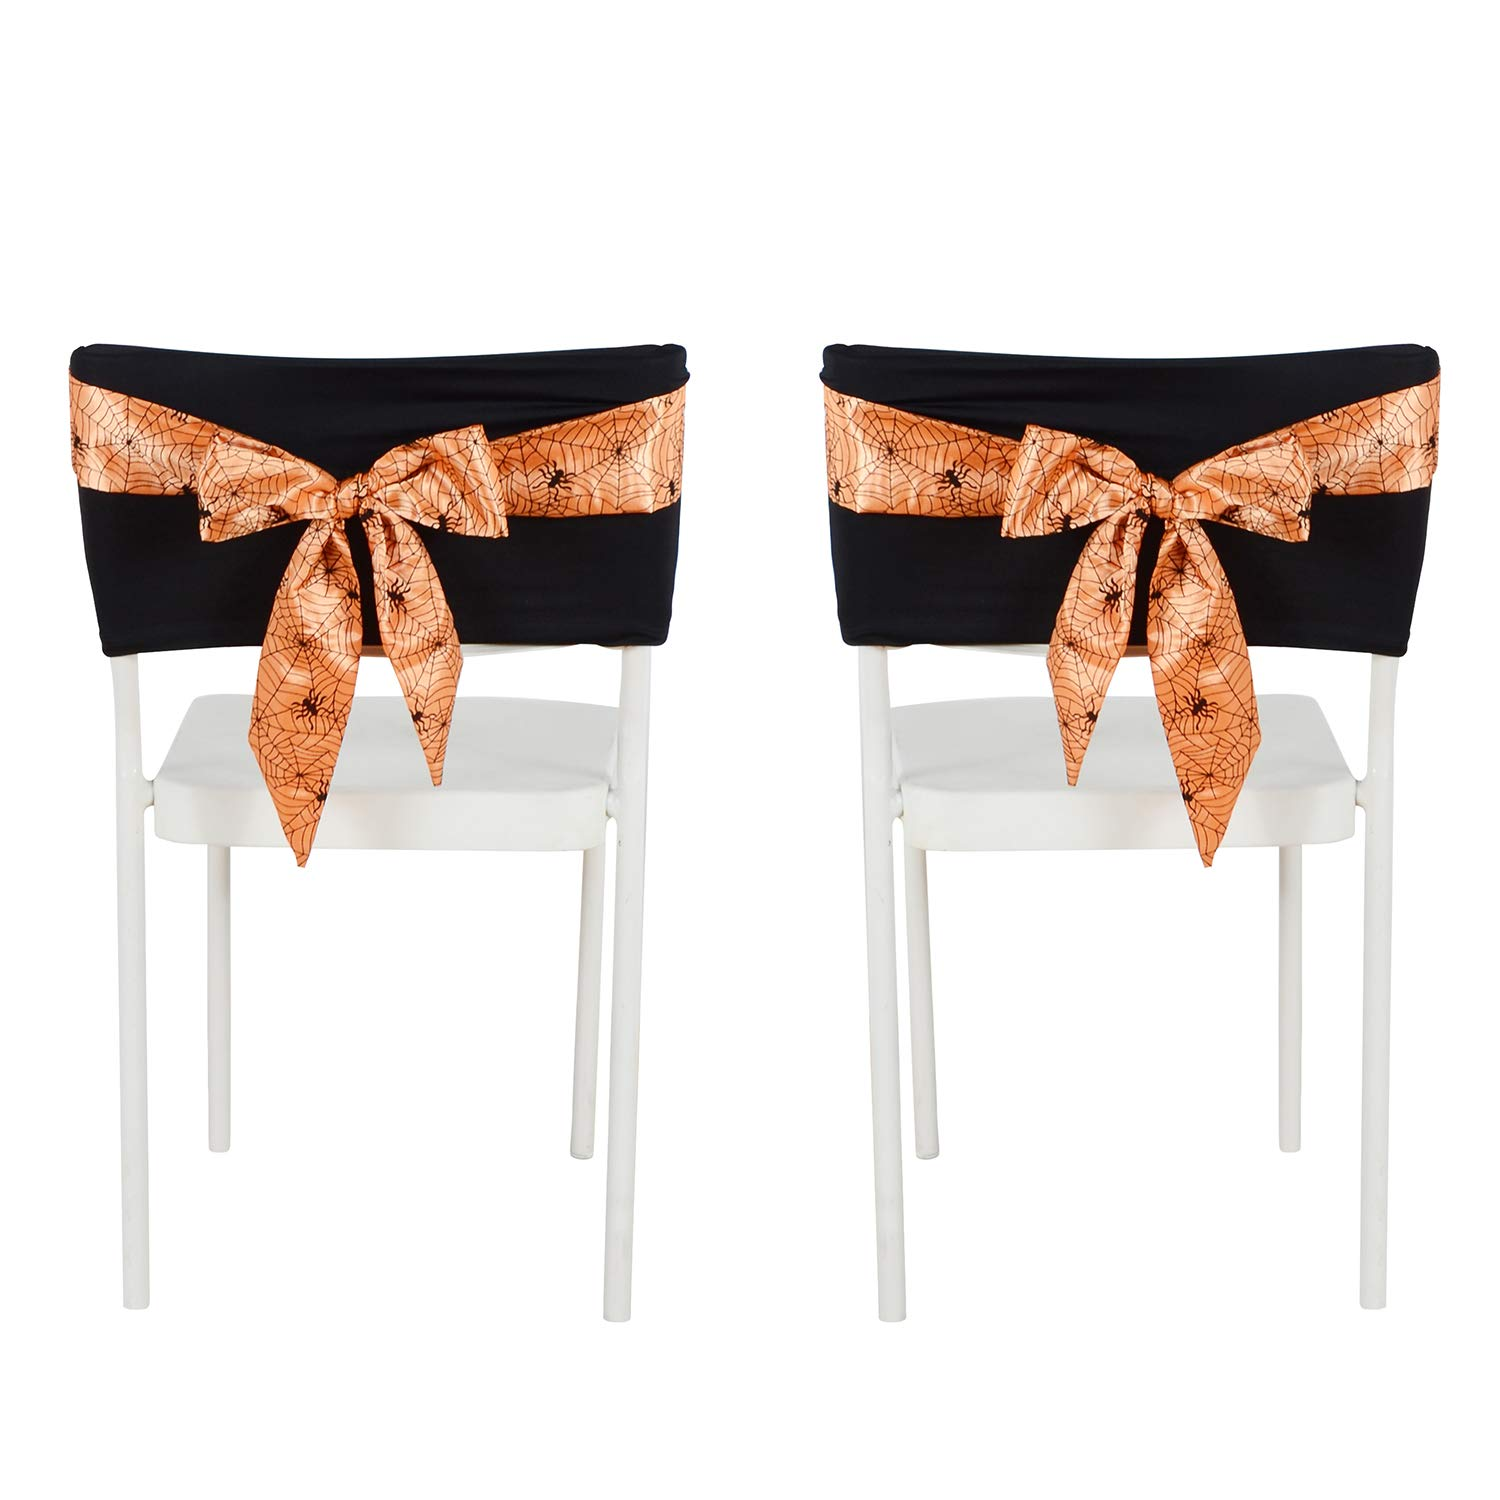 Besutolife Halloween Decorations Chair Covers with Decorative Straps Spiderweb Elastic Orange Chair Covers for Halloween, Scary Movie Nights, Dinner Parties or Everyday Use